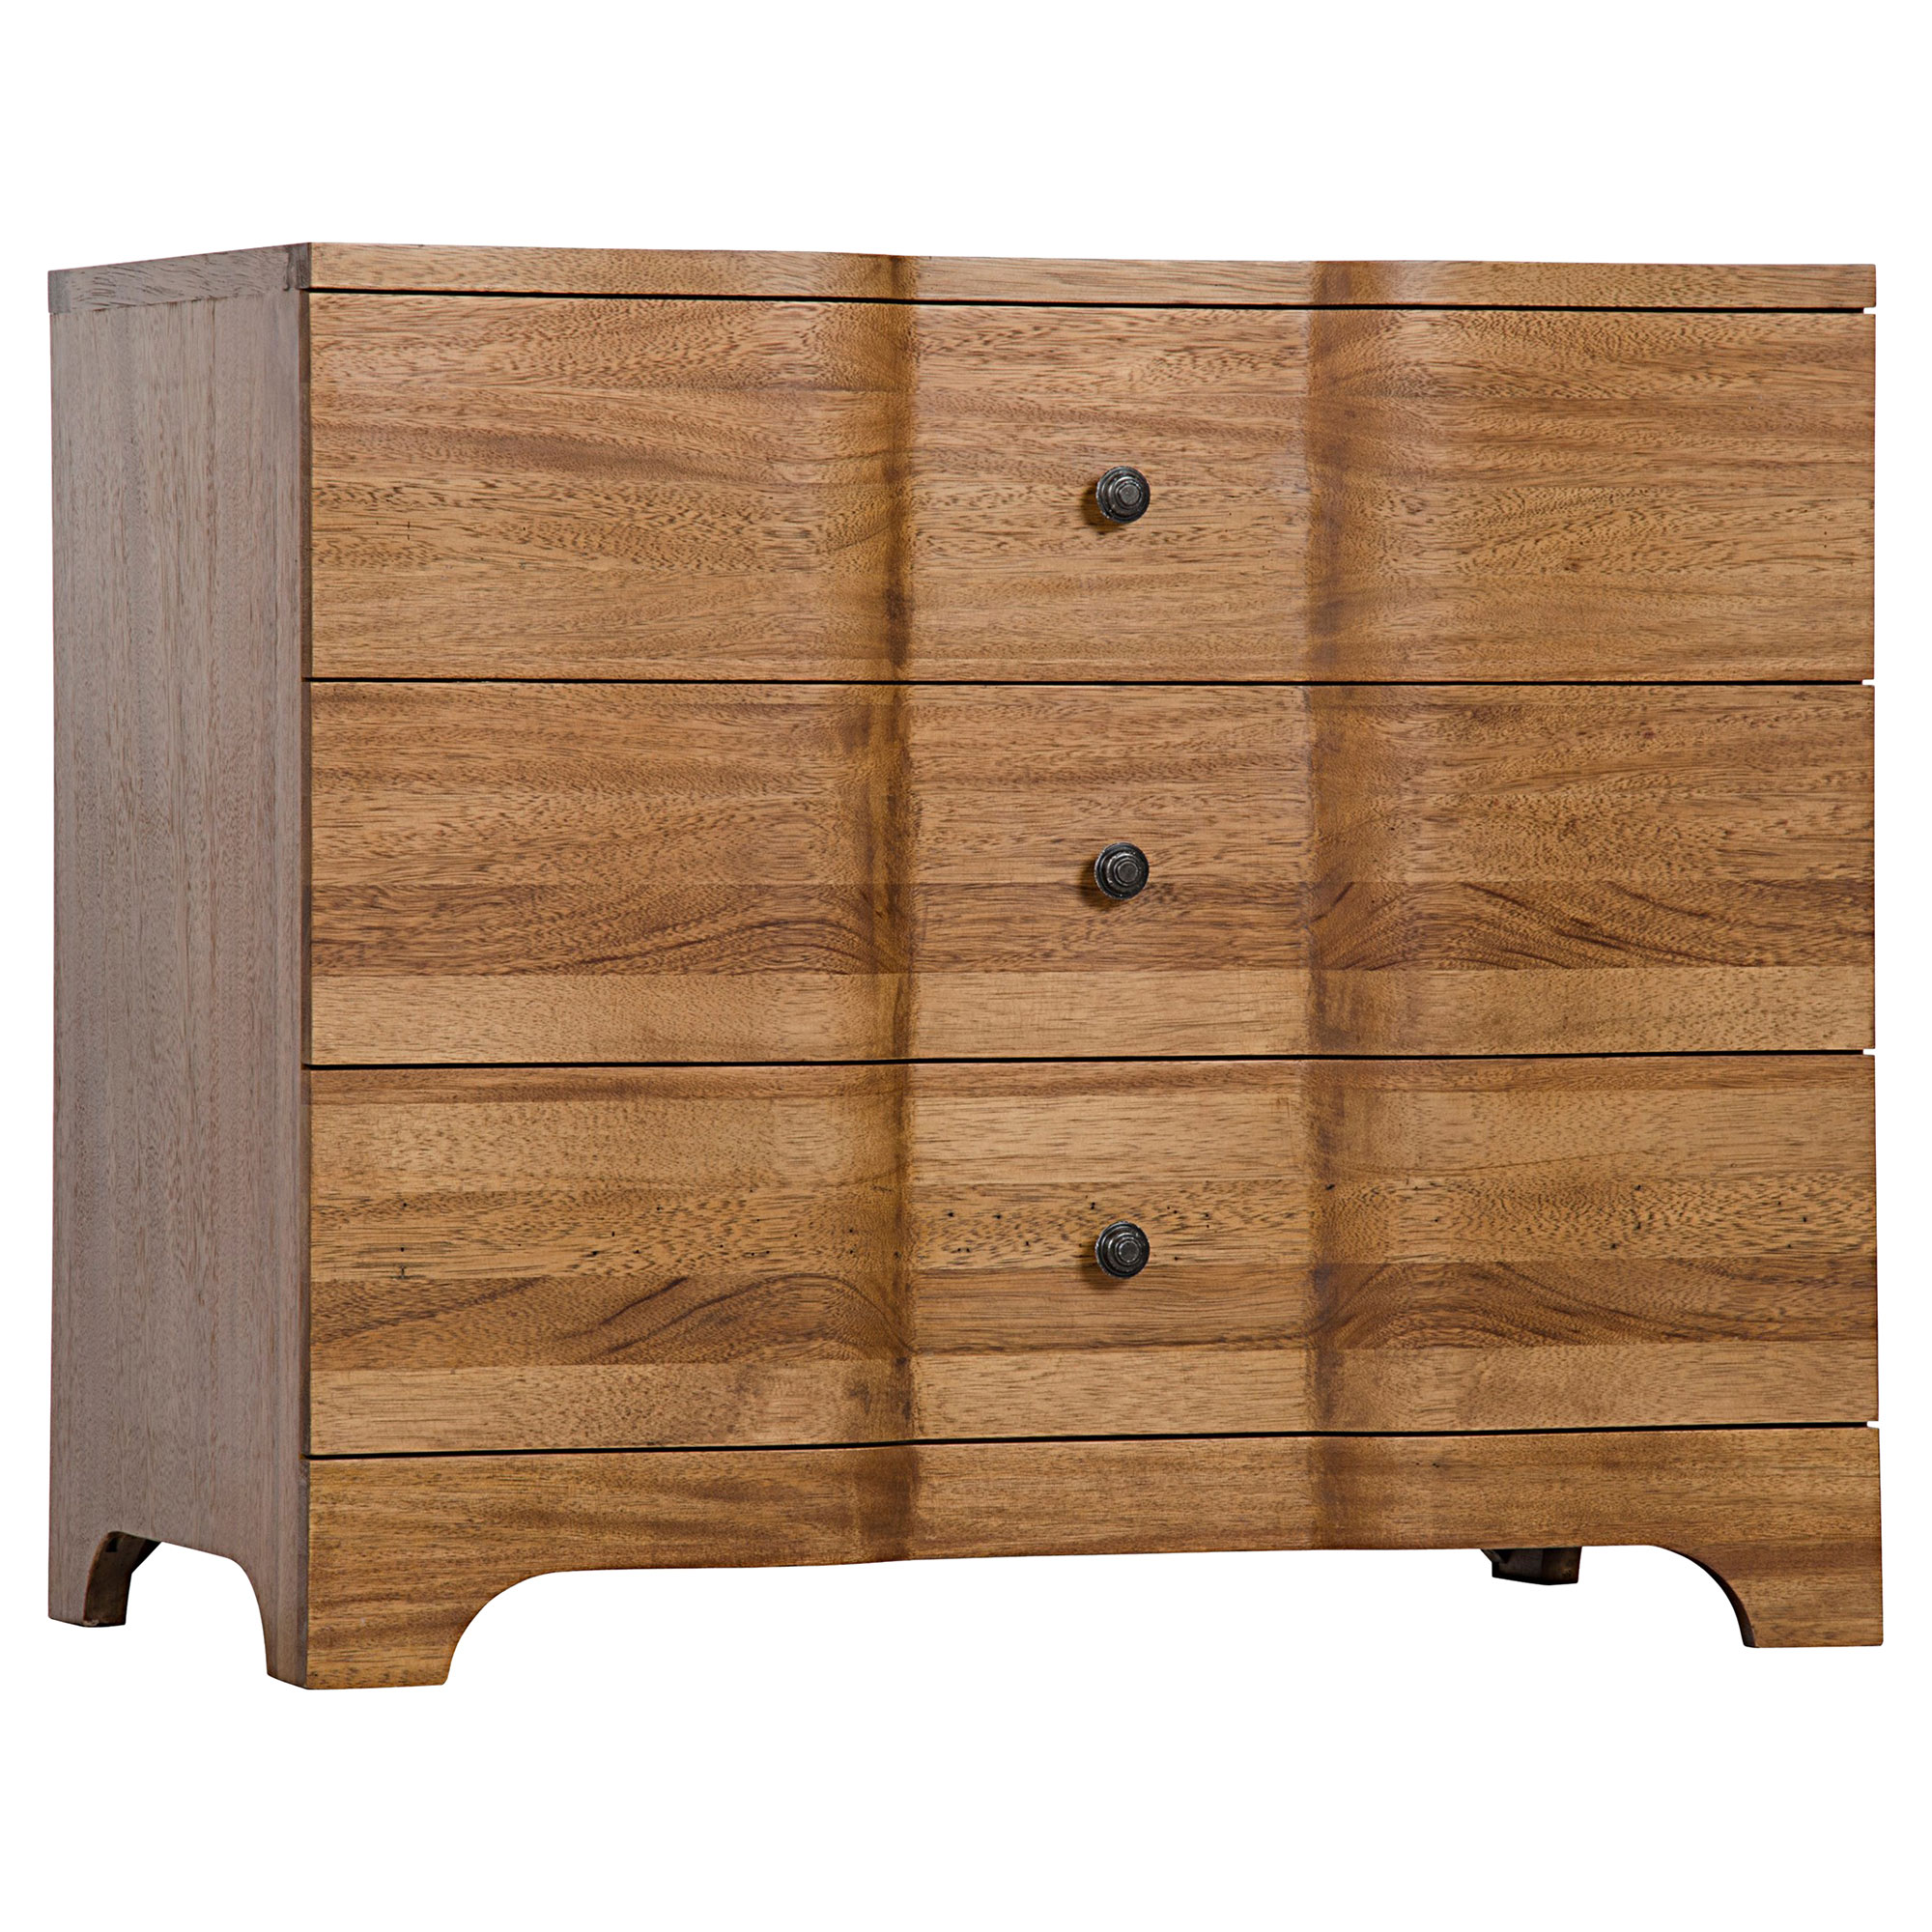 Marlette Rustic Lodge Burnished Amber Walnut 3-Drawer Dresser